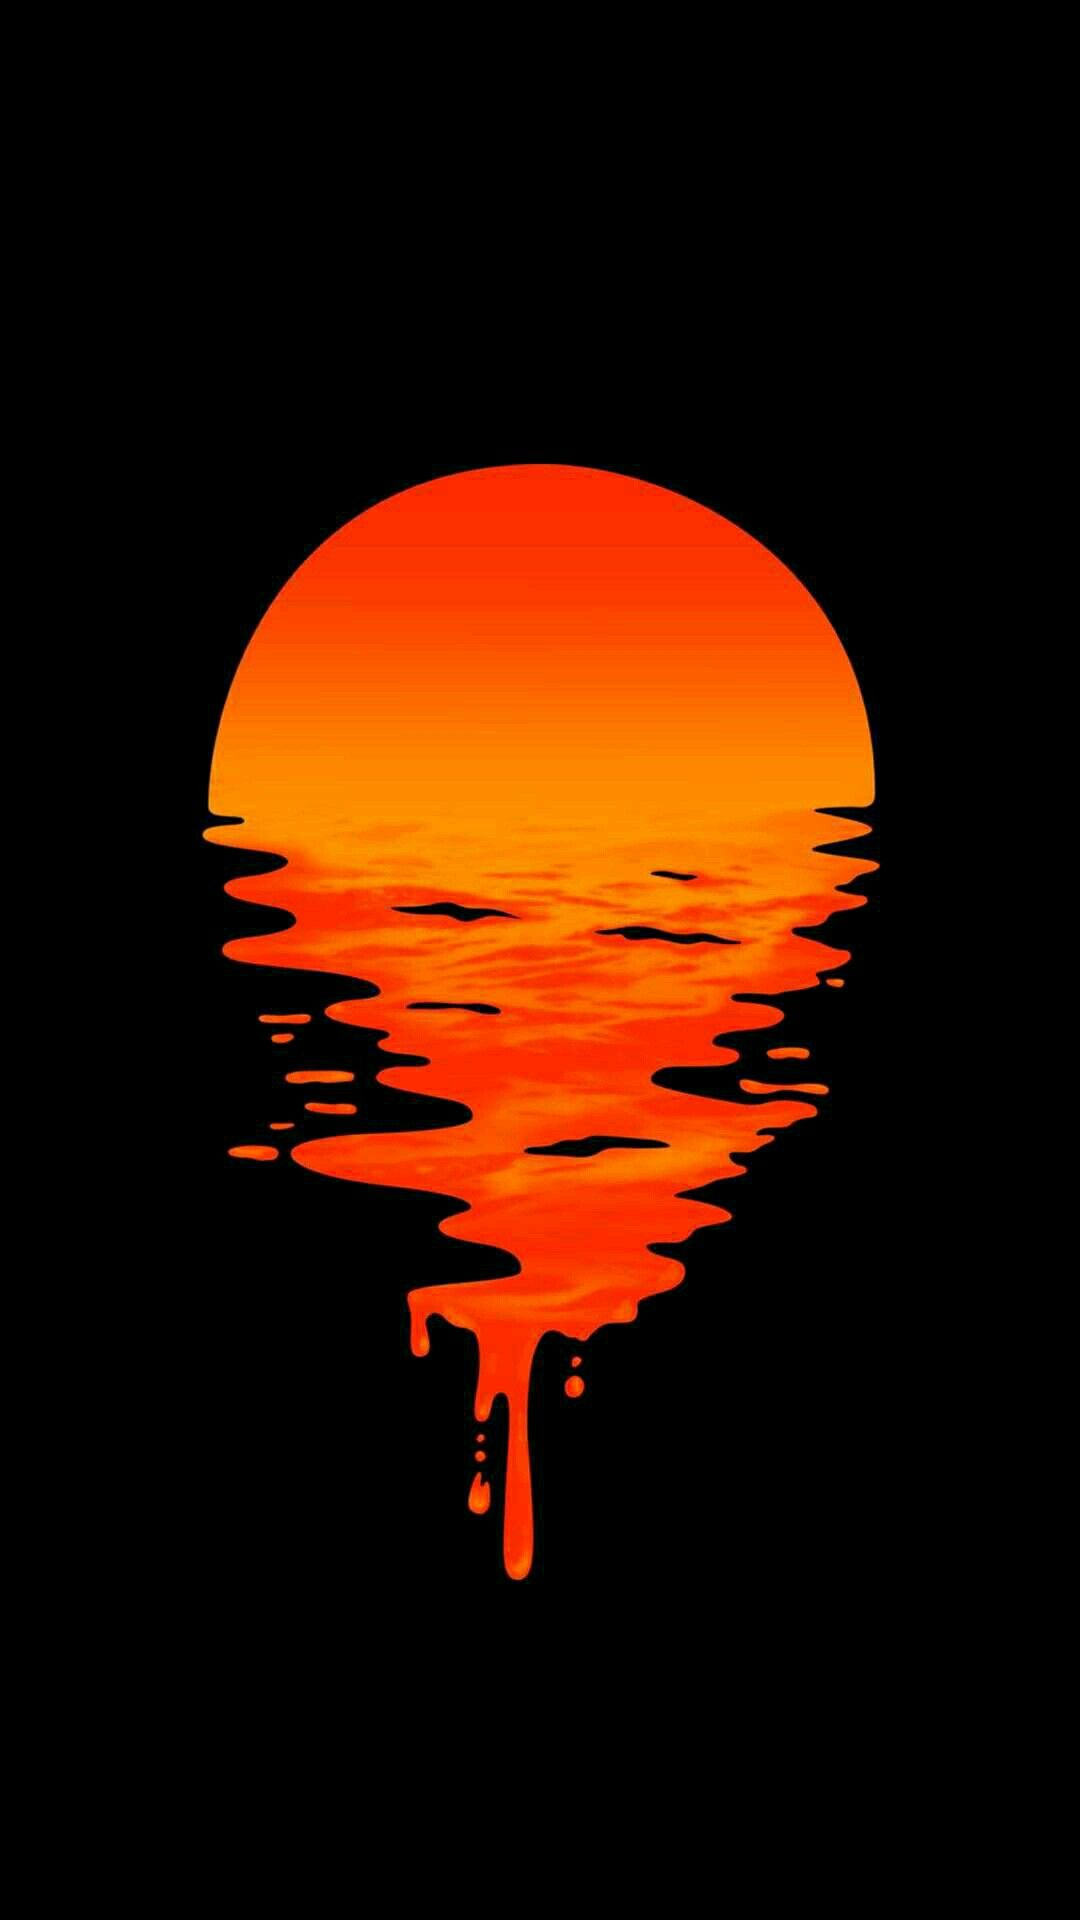 Sunset 39 s are love black wallpapers in 2019 screen - Sunset iphone background ...